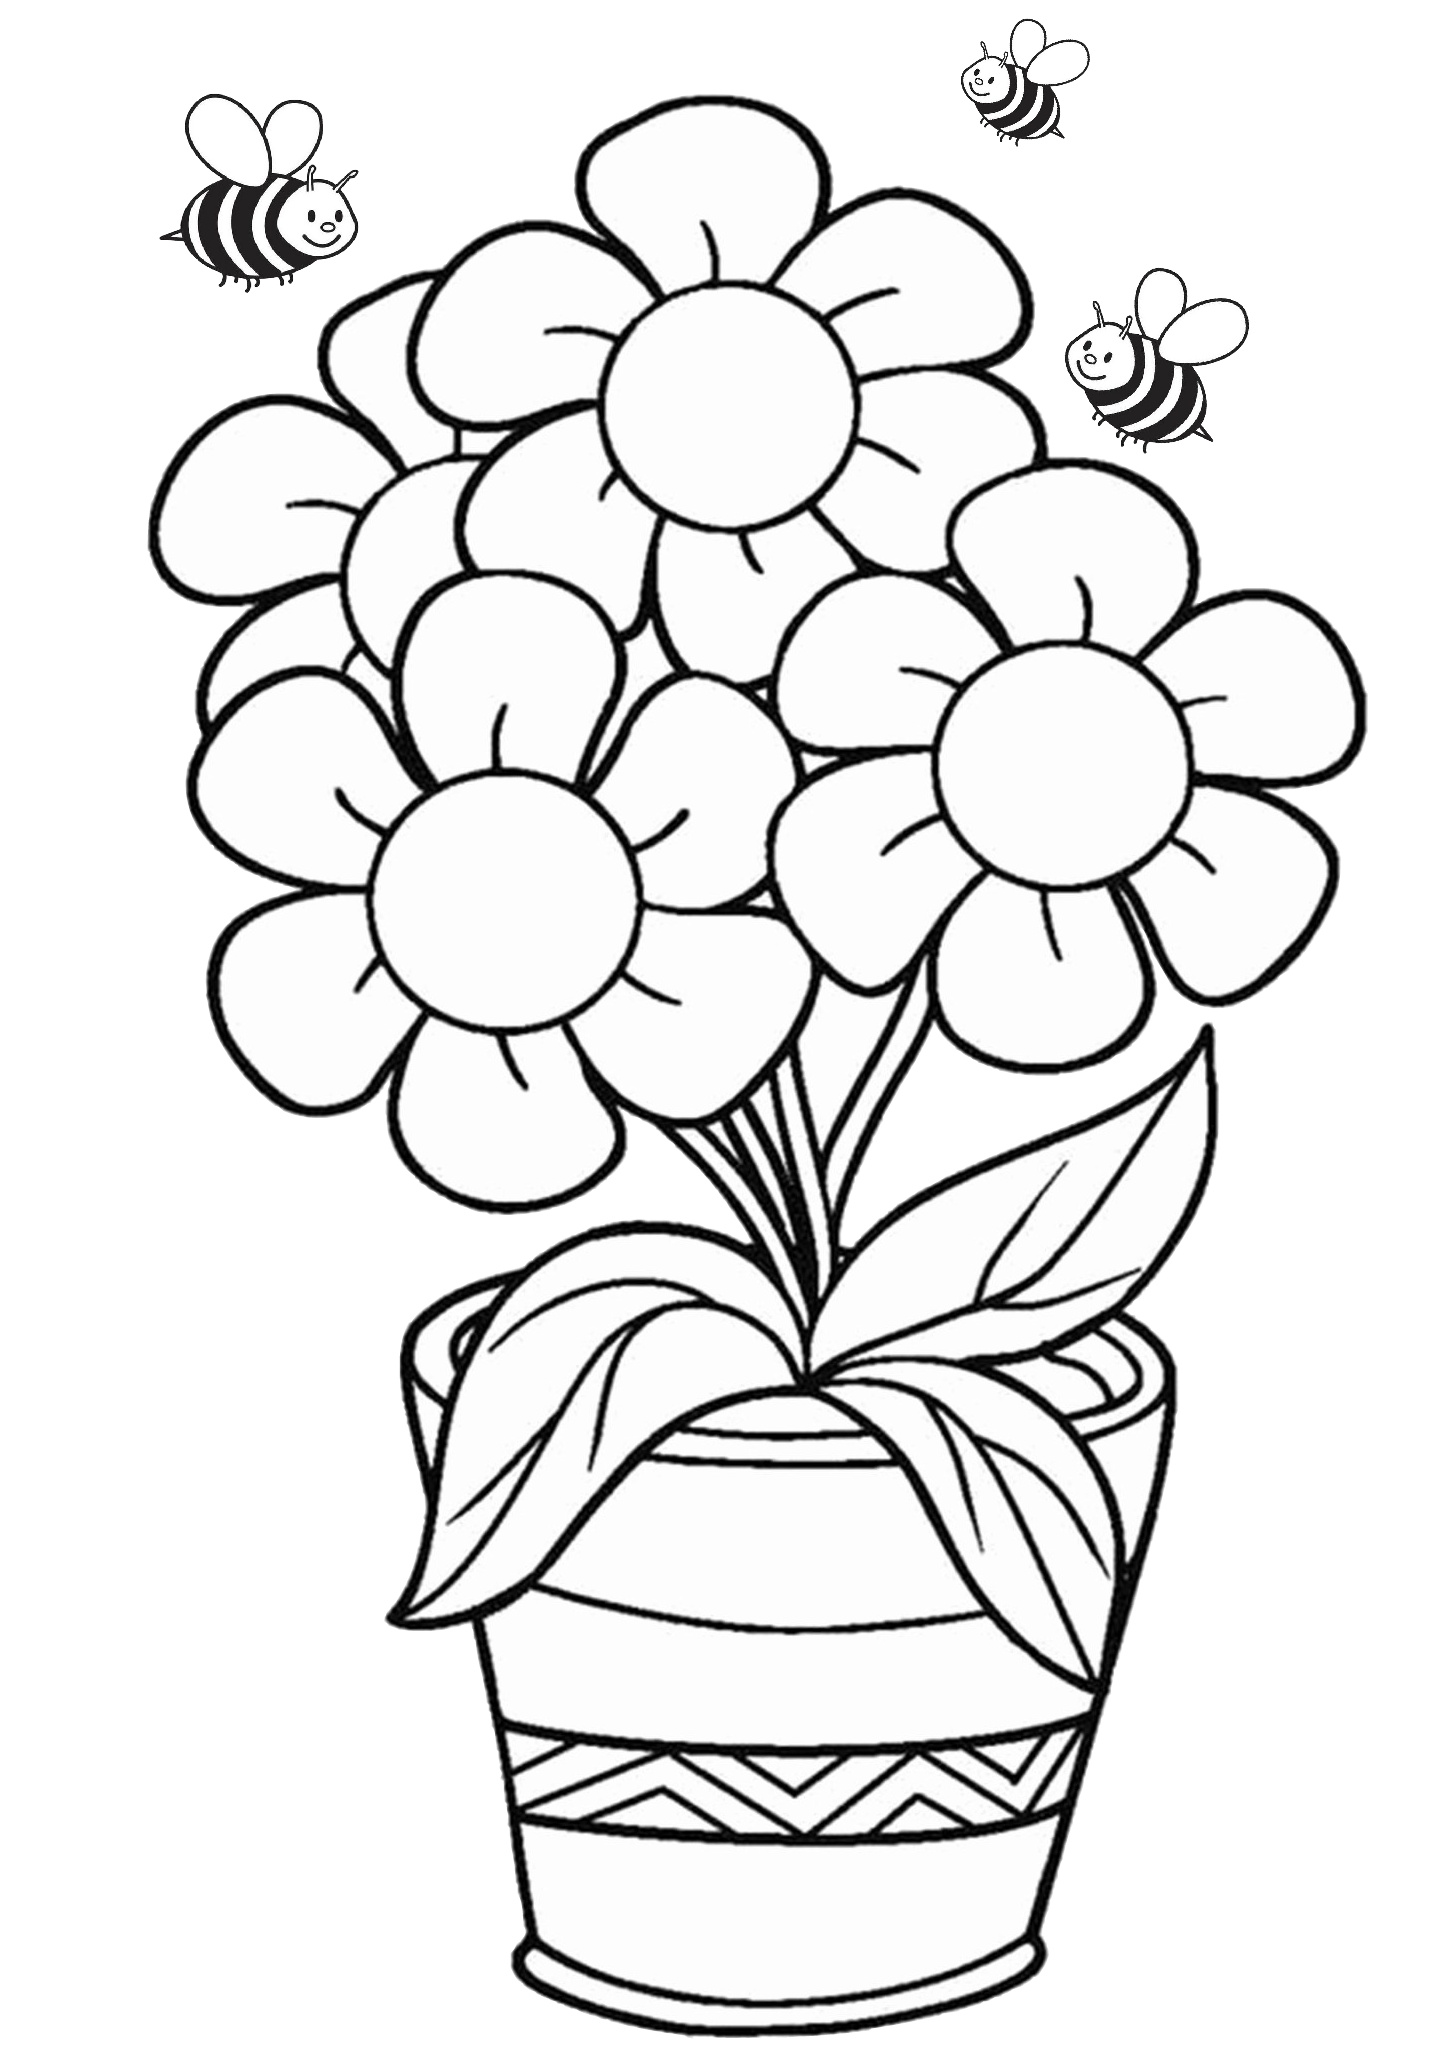 flower coloring pages printables free printable floral coloring page ausdruckbare printables flower coloring pages